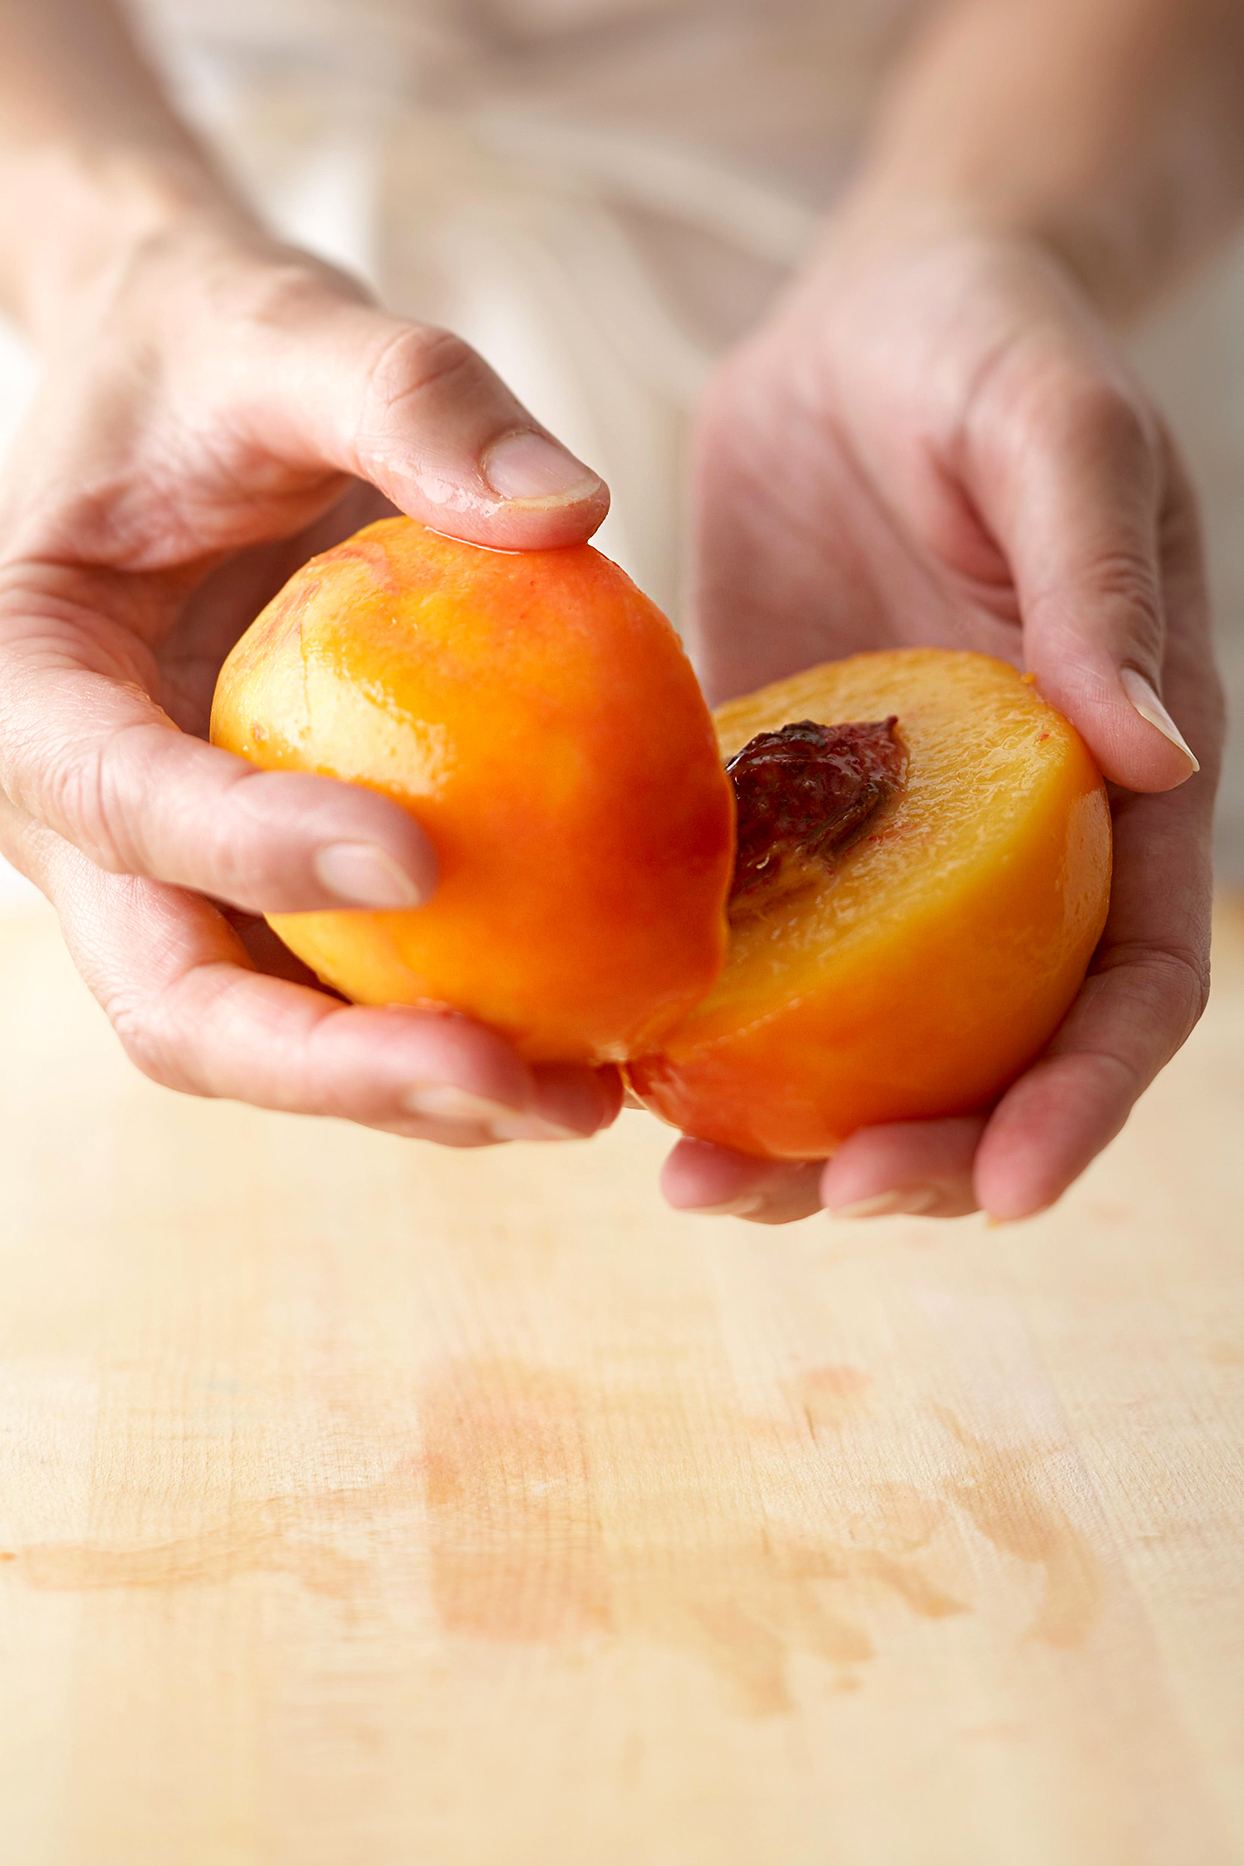 twisting peach to separate into halves